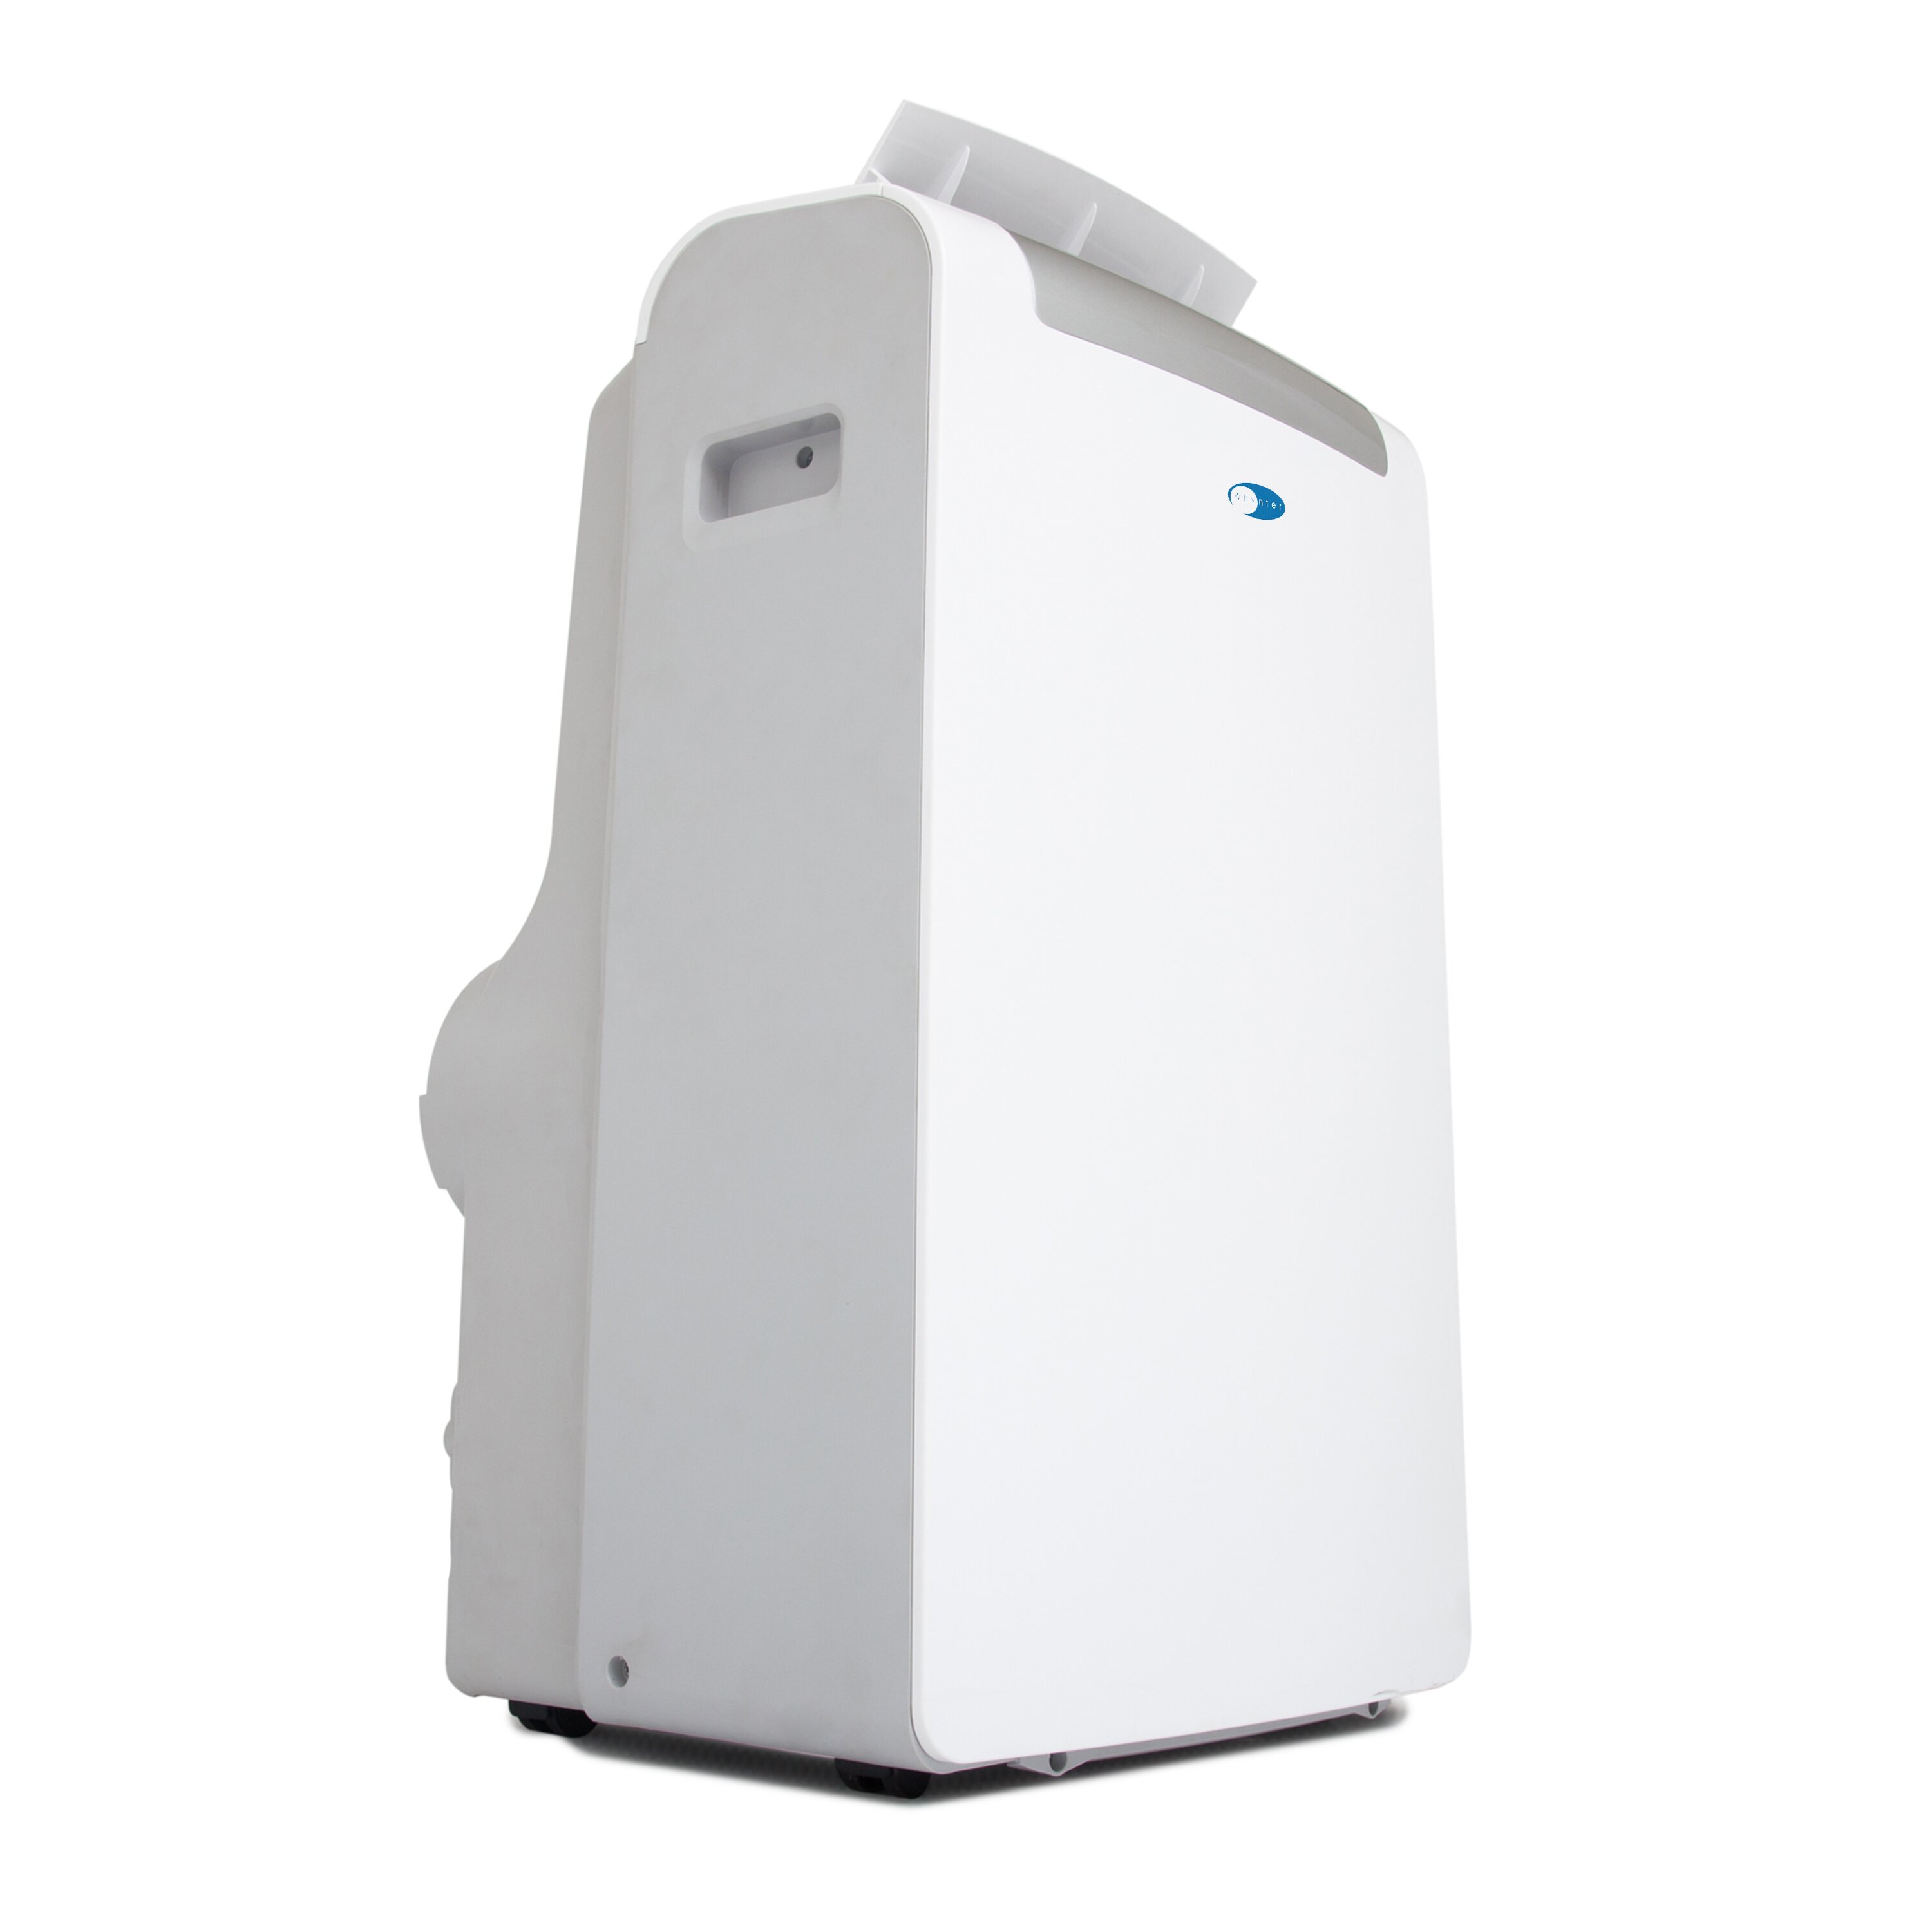 #2B74A0 3000 Btu Portable Air Conditioner Air Conditioner Database Most Effective 9985 3000 Btu Portable Air Conditioner pictures with 3000x3000 px on helpvideos.info - Air Conditioners, Air Coolers and more